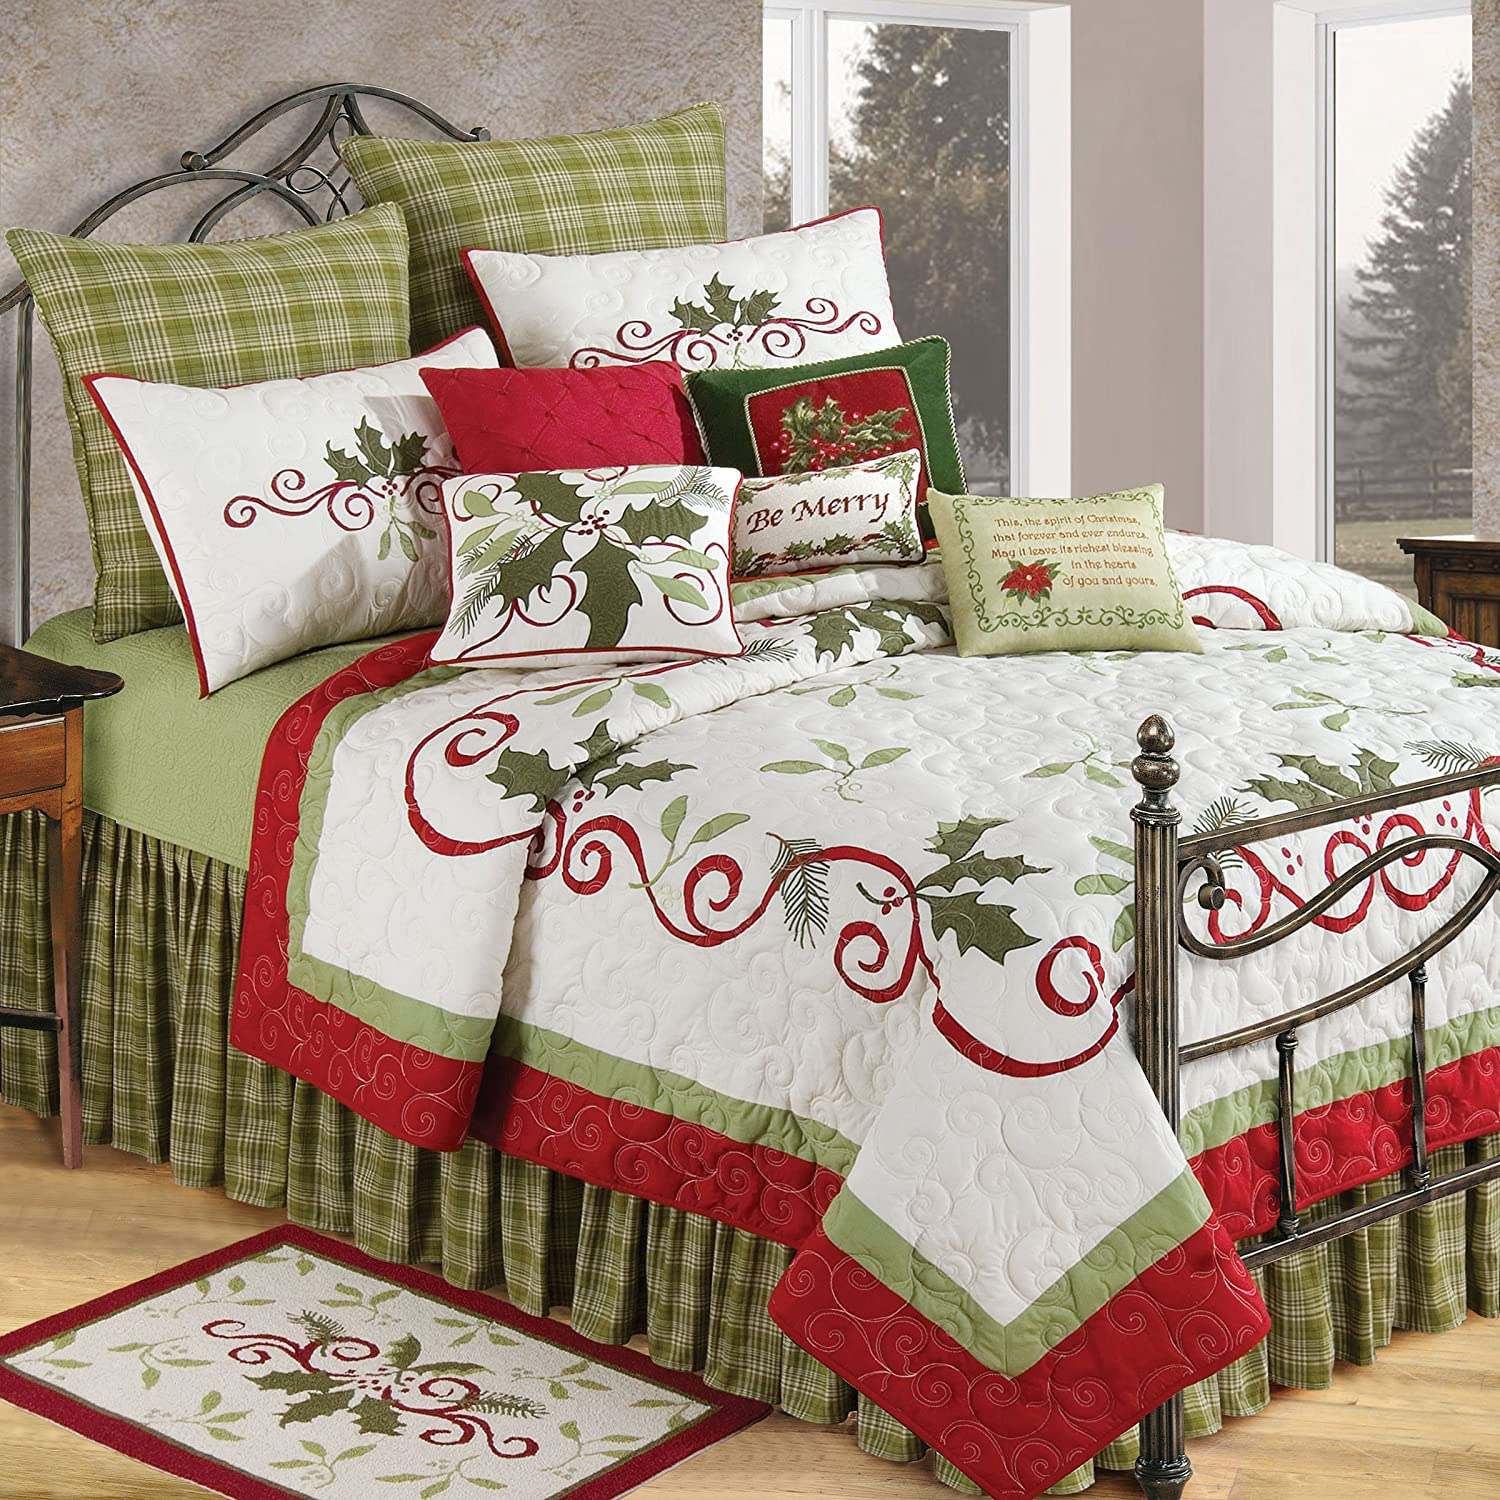 C&F Home Holiday Garland King Quilt King Green